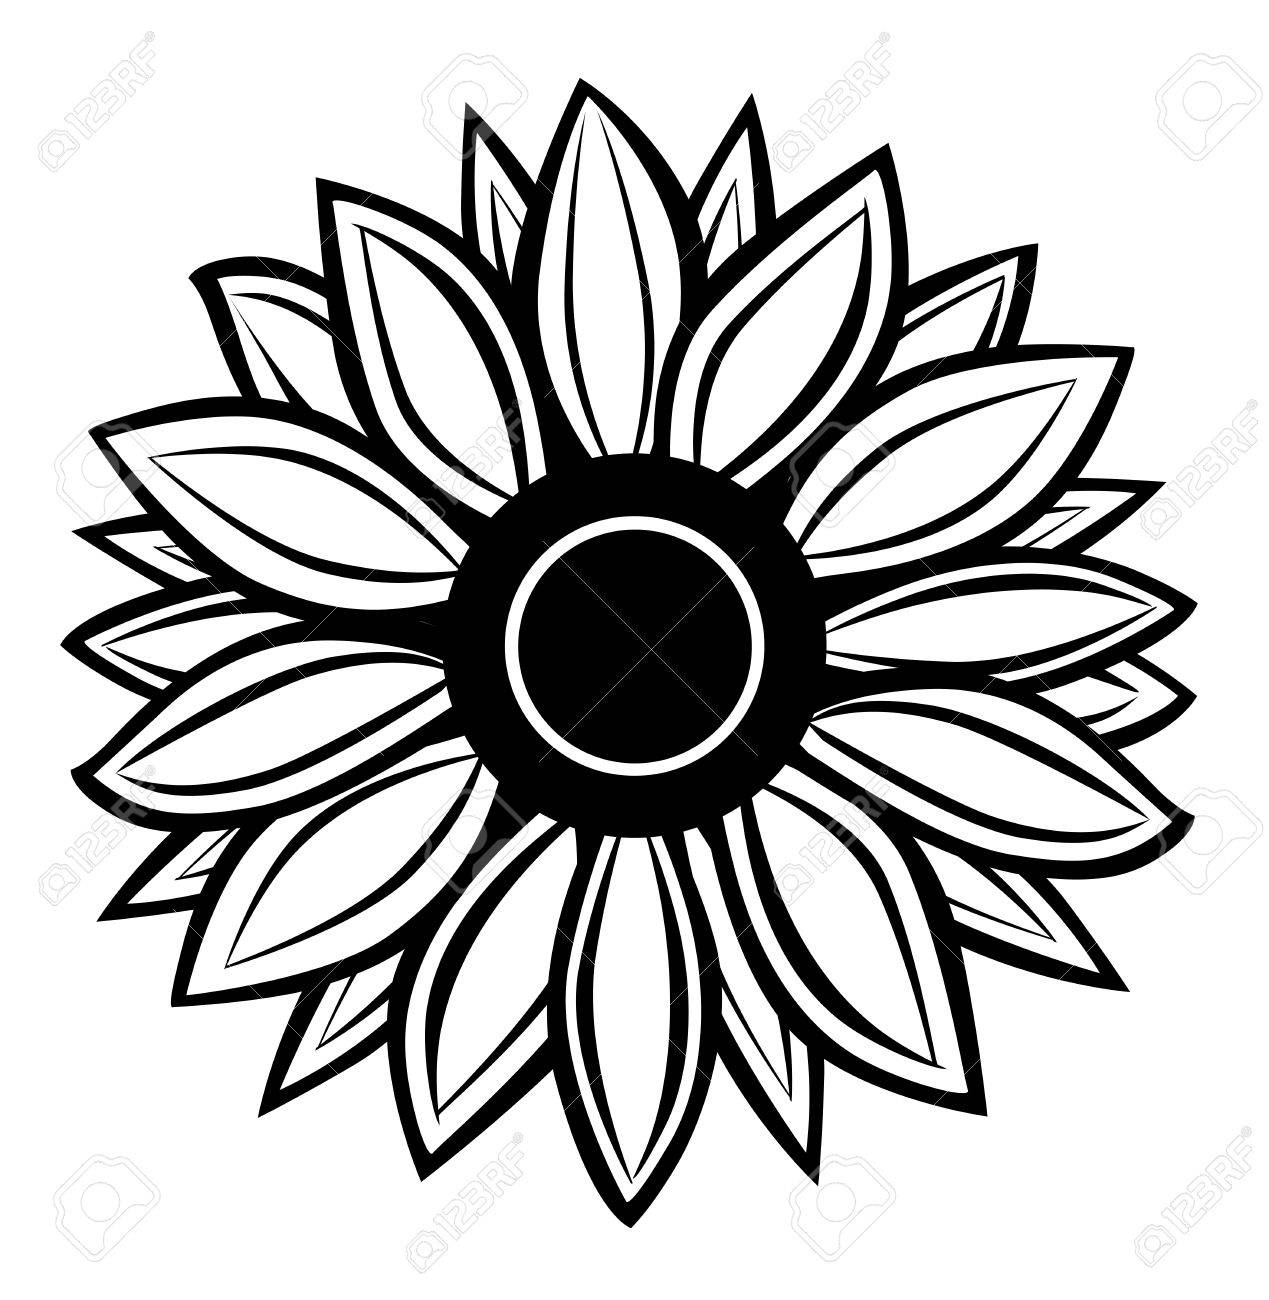 vector sunflower royalty free cliparts vectors and stock rh 123rf com sunflower vector logo sunflower vector free download